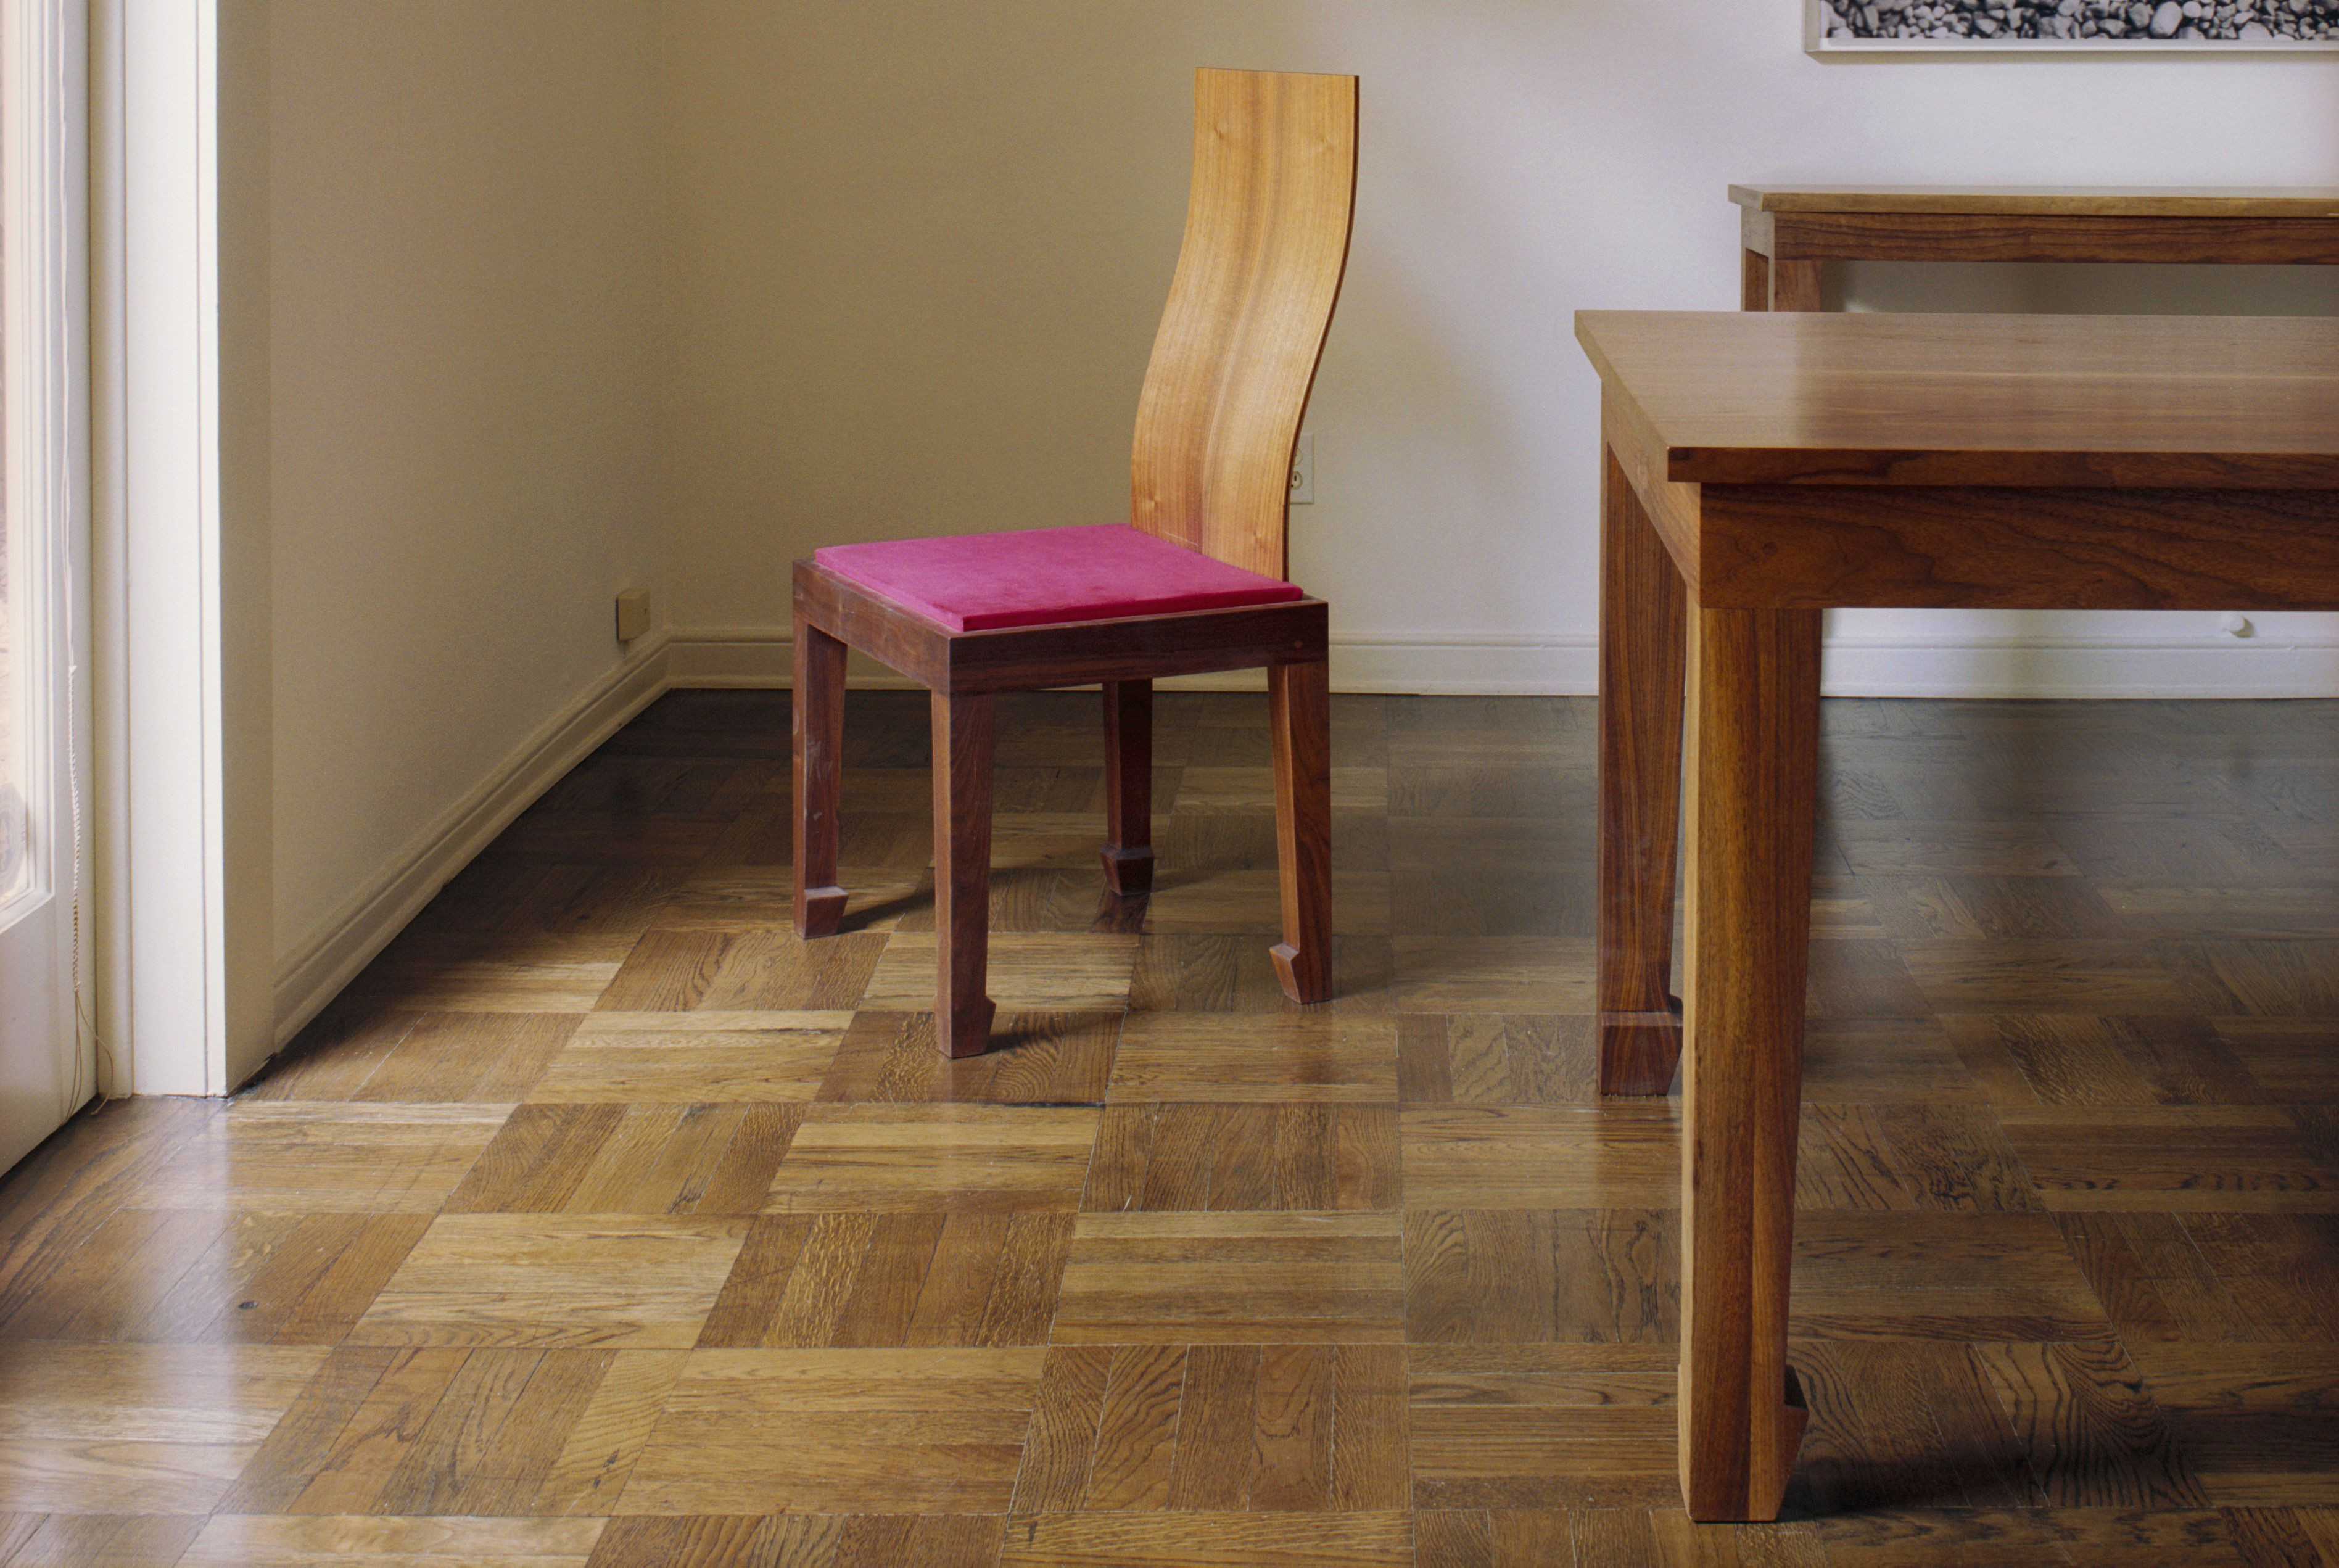 hardwood floor refinishing options of wood parquet flooring poised for a resurgence with wood parquet flooring 529502452 576c78195f9b585875a1ac13